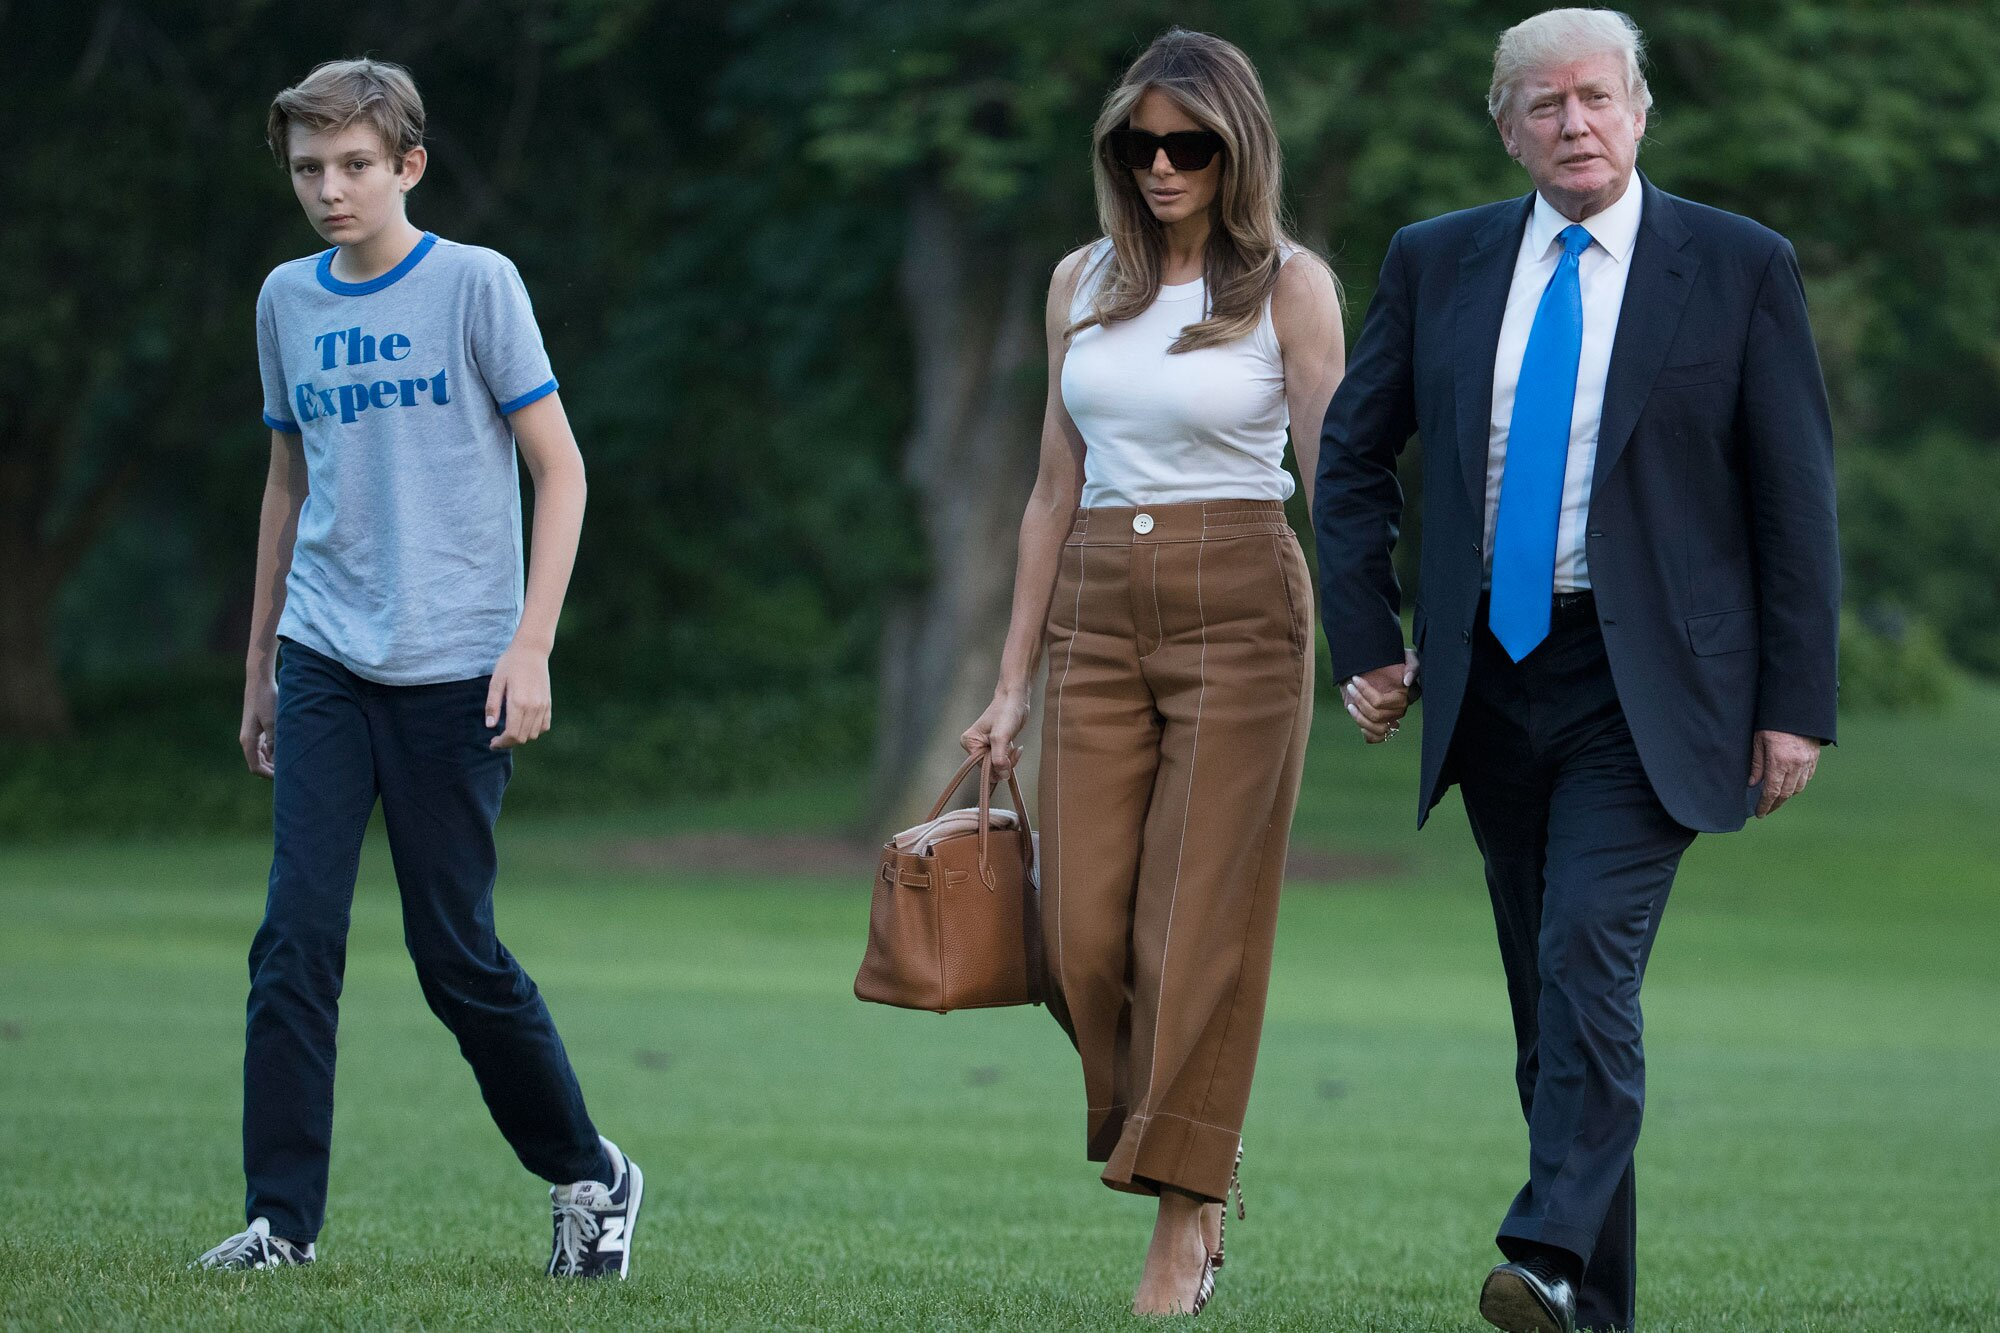 The Serious Side - part 8 - Page 14 Image?url=https%3A%2F%2Fstatic.onecms.io%2Fwp-content%2Fuploads%2Fsites%2F20%2F2017%2F09%2Fbarron-melania-trump-2000